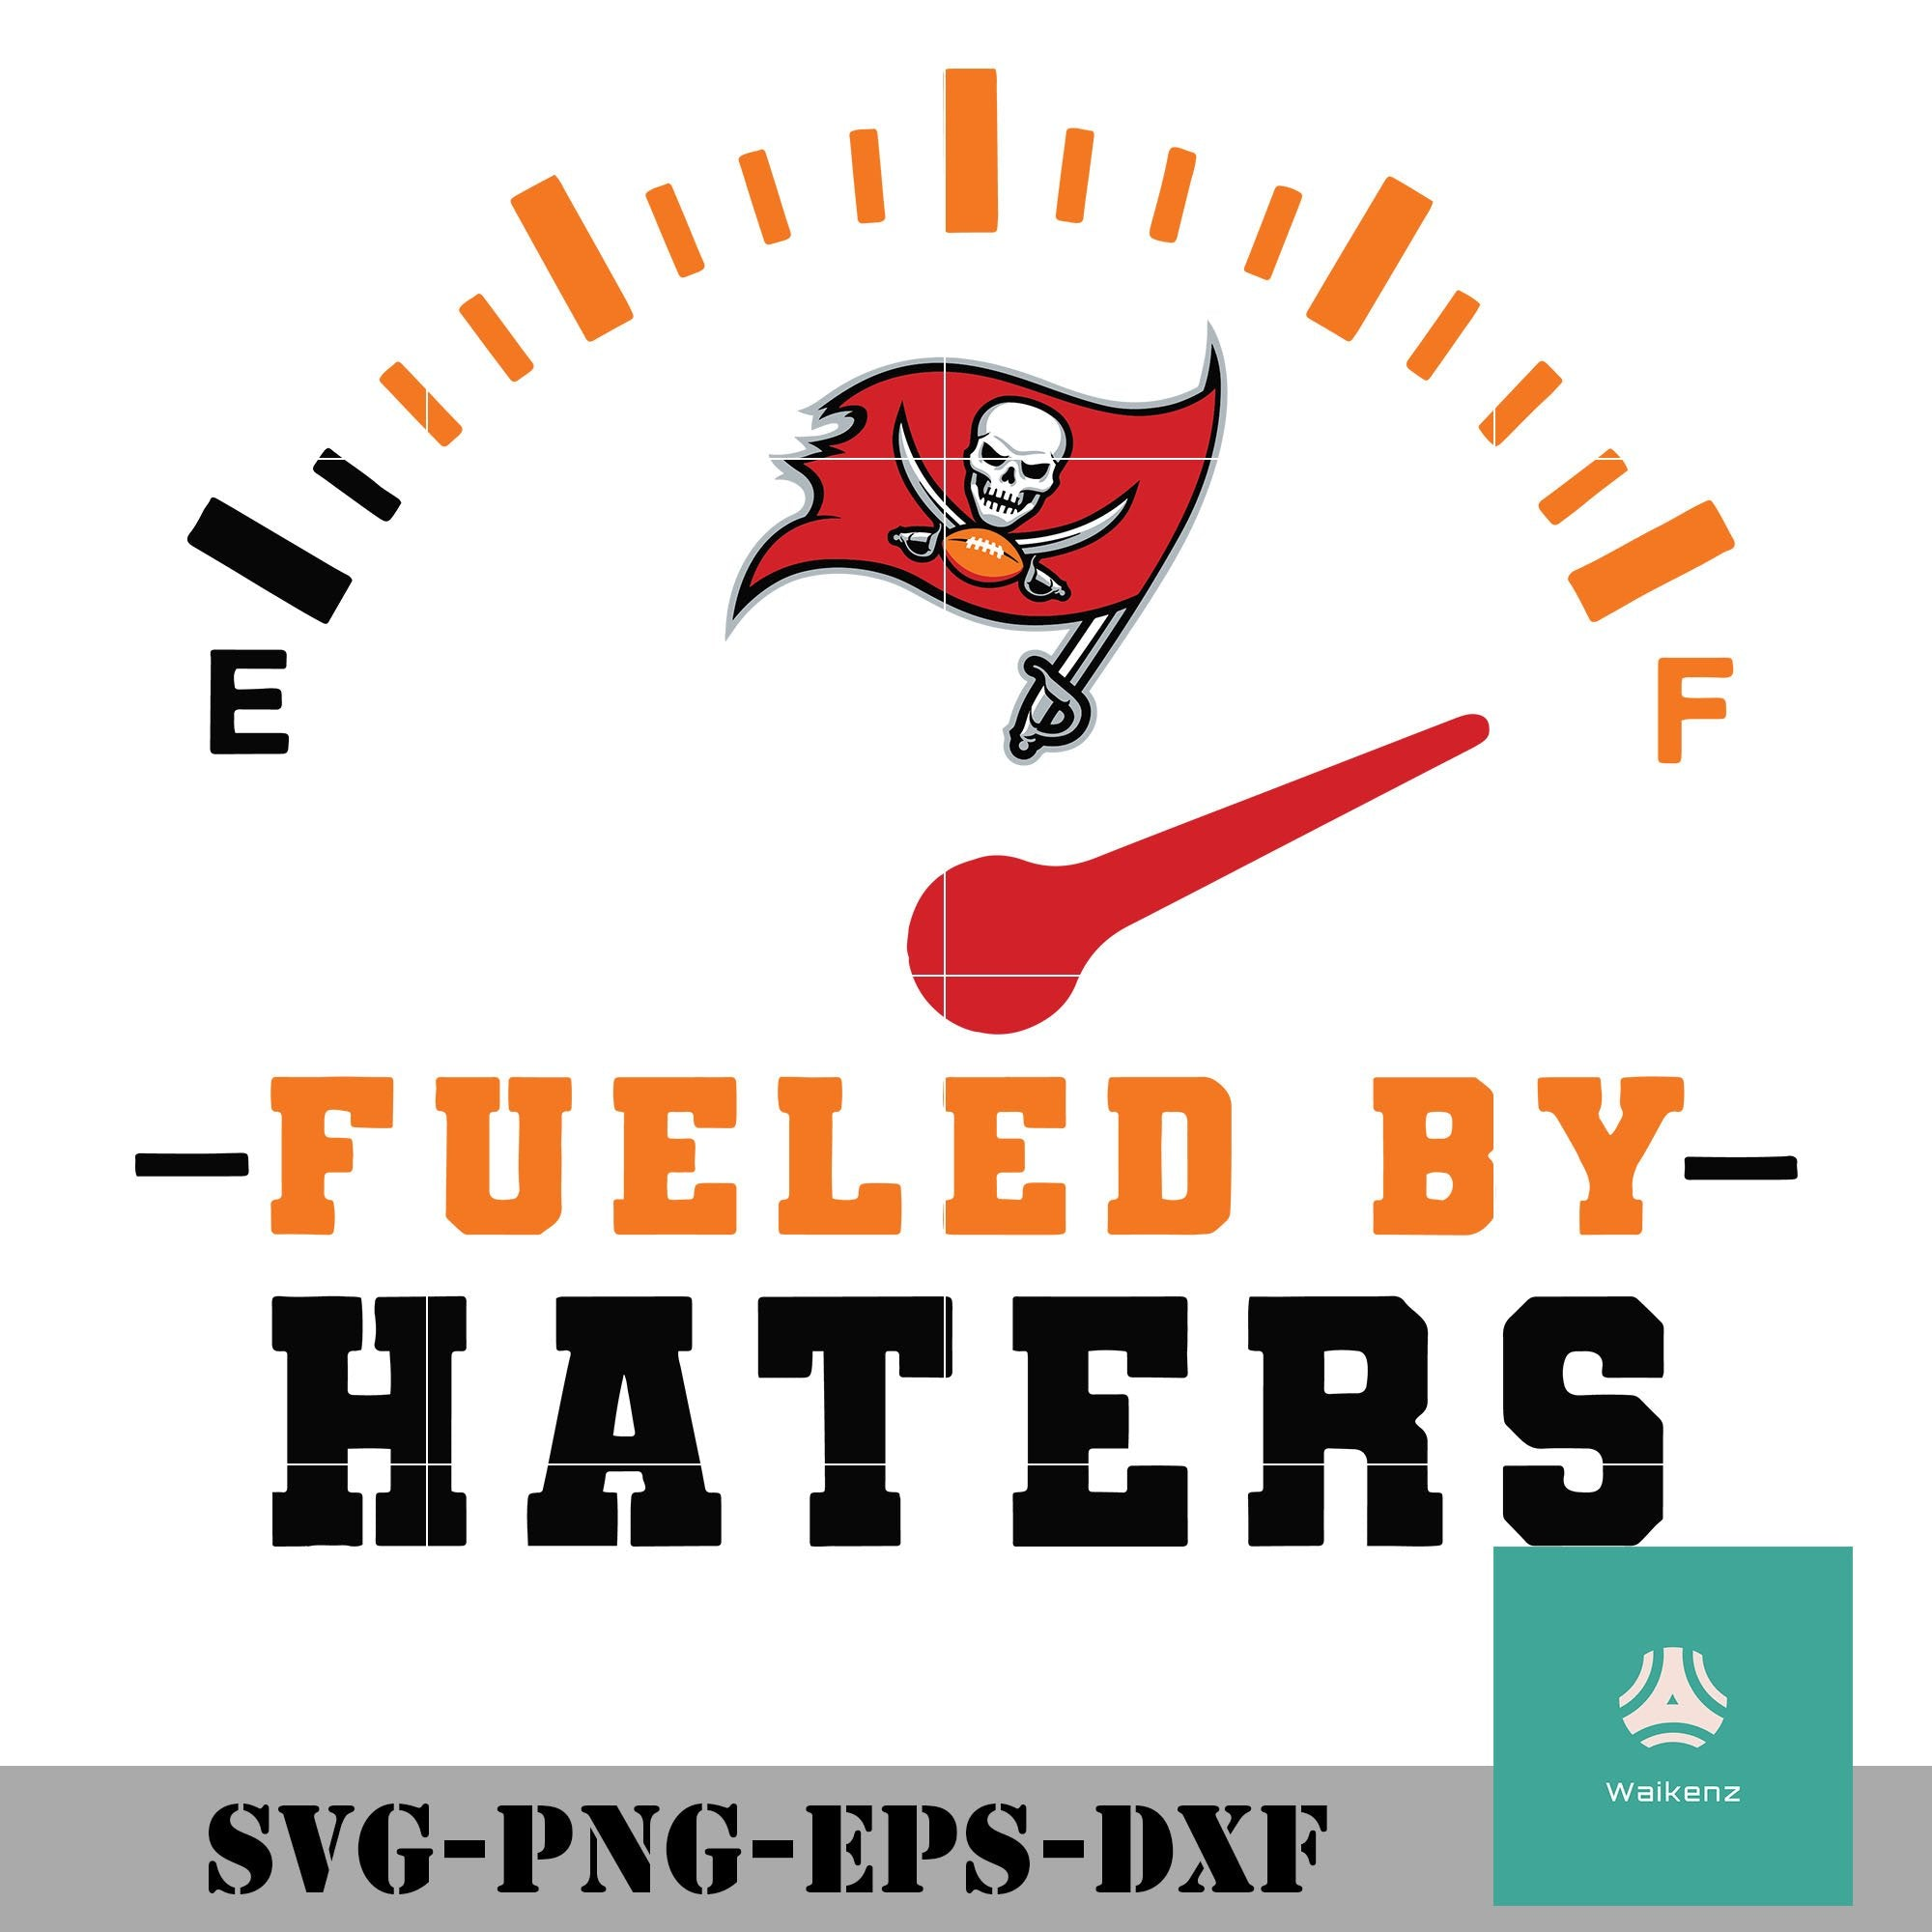 tampa bay buccaneers fueled by haters svg tampa bay buccaneers svg p waikenz haters svg tampa bay buccaneers svg